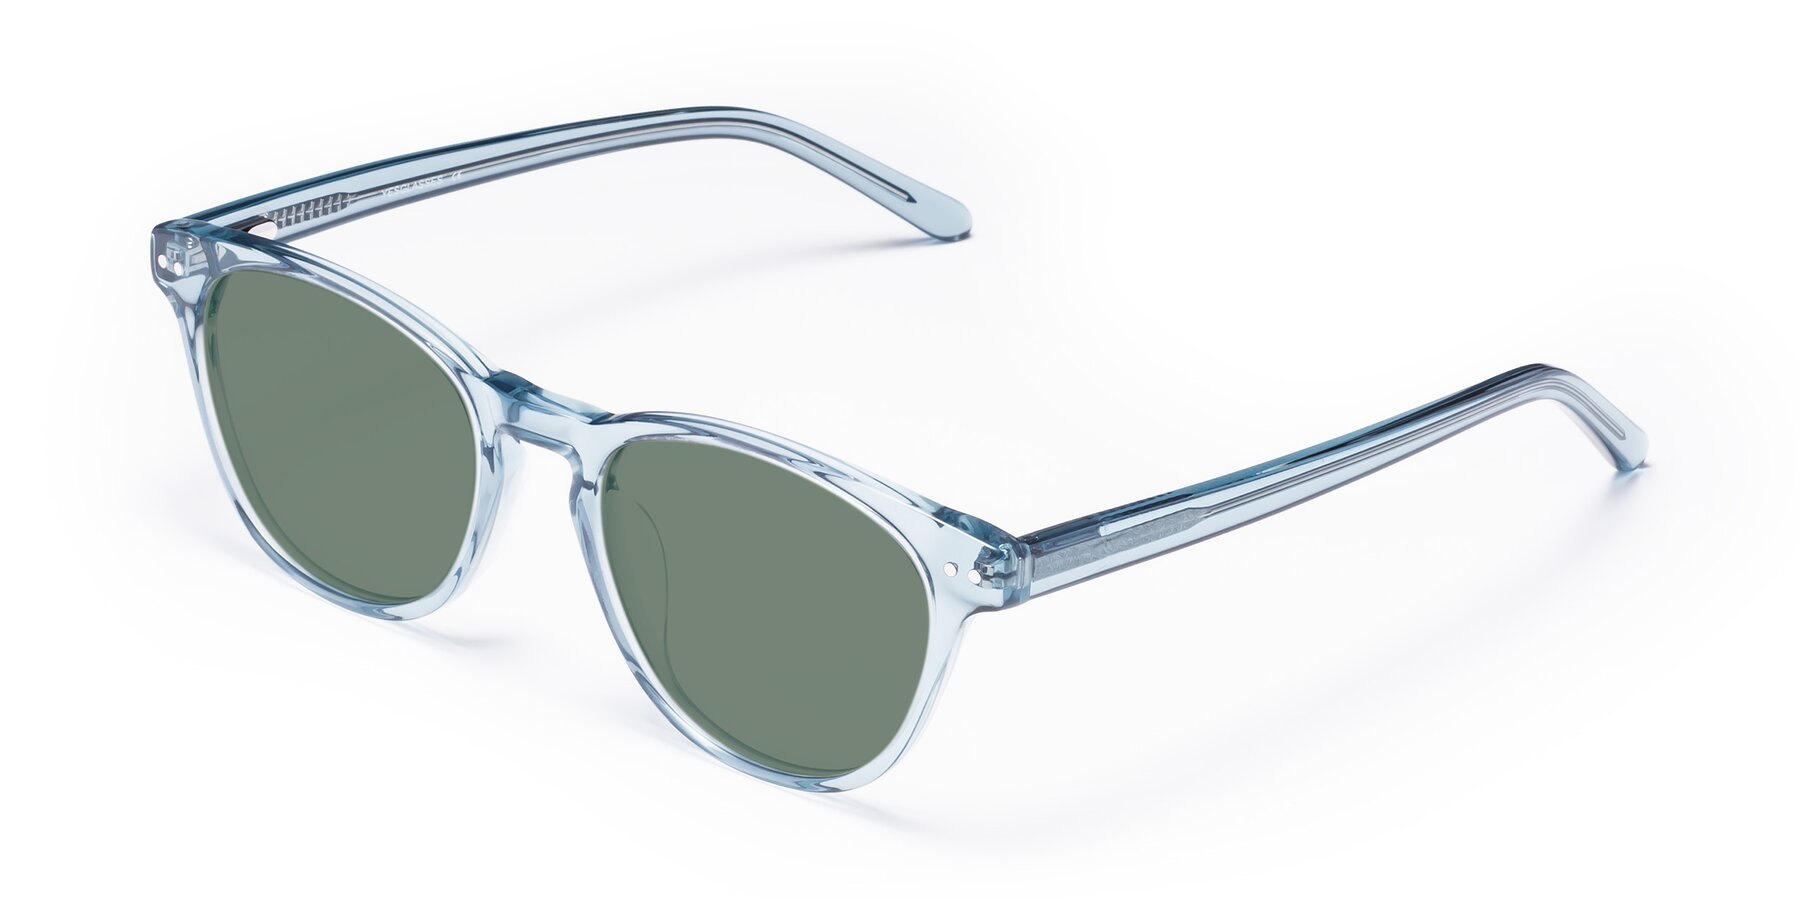 Angle of Blaze in Light Blue with Medium Green Tinted Lenses